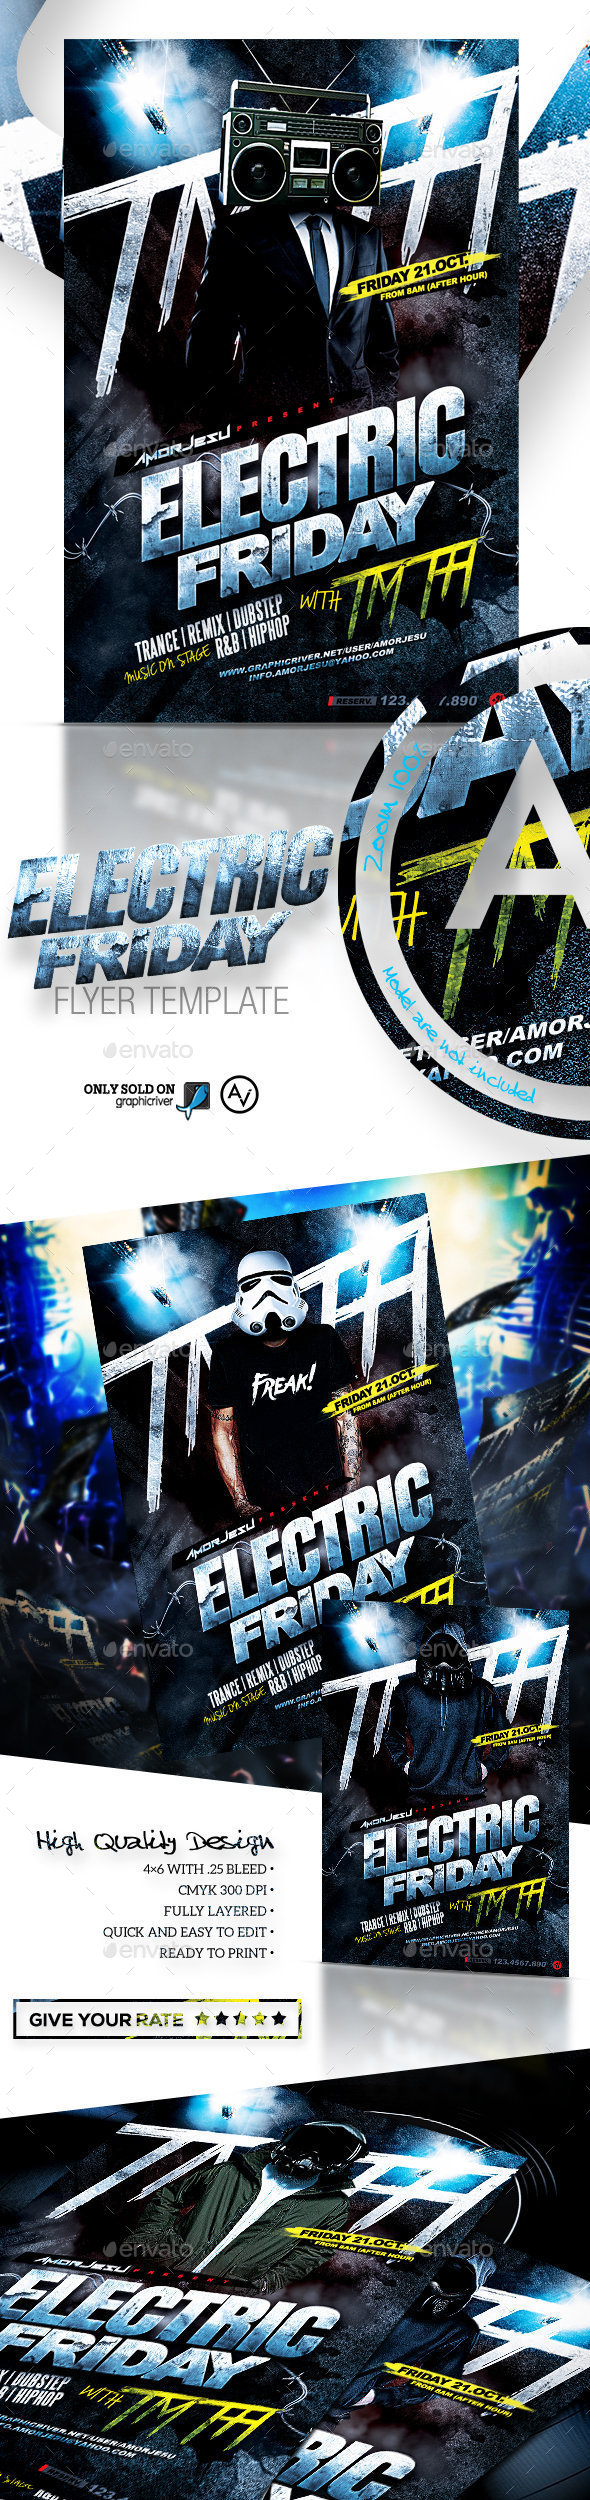 Electric Friday Flyer Template - Clubs & Parties Events